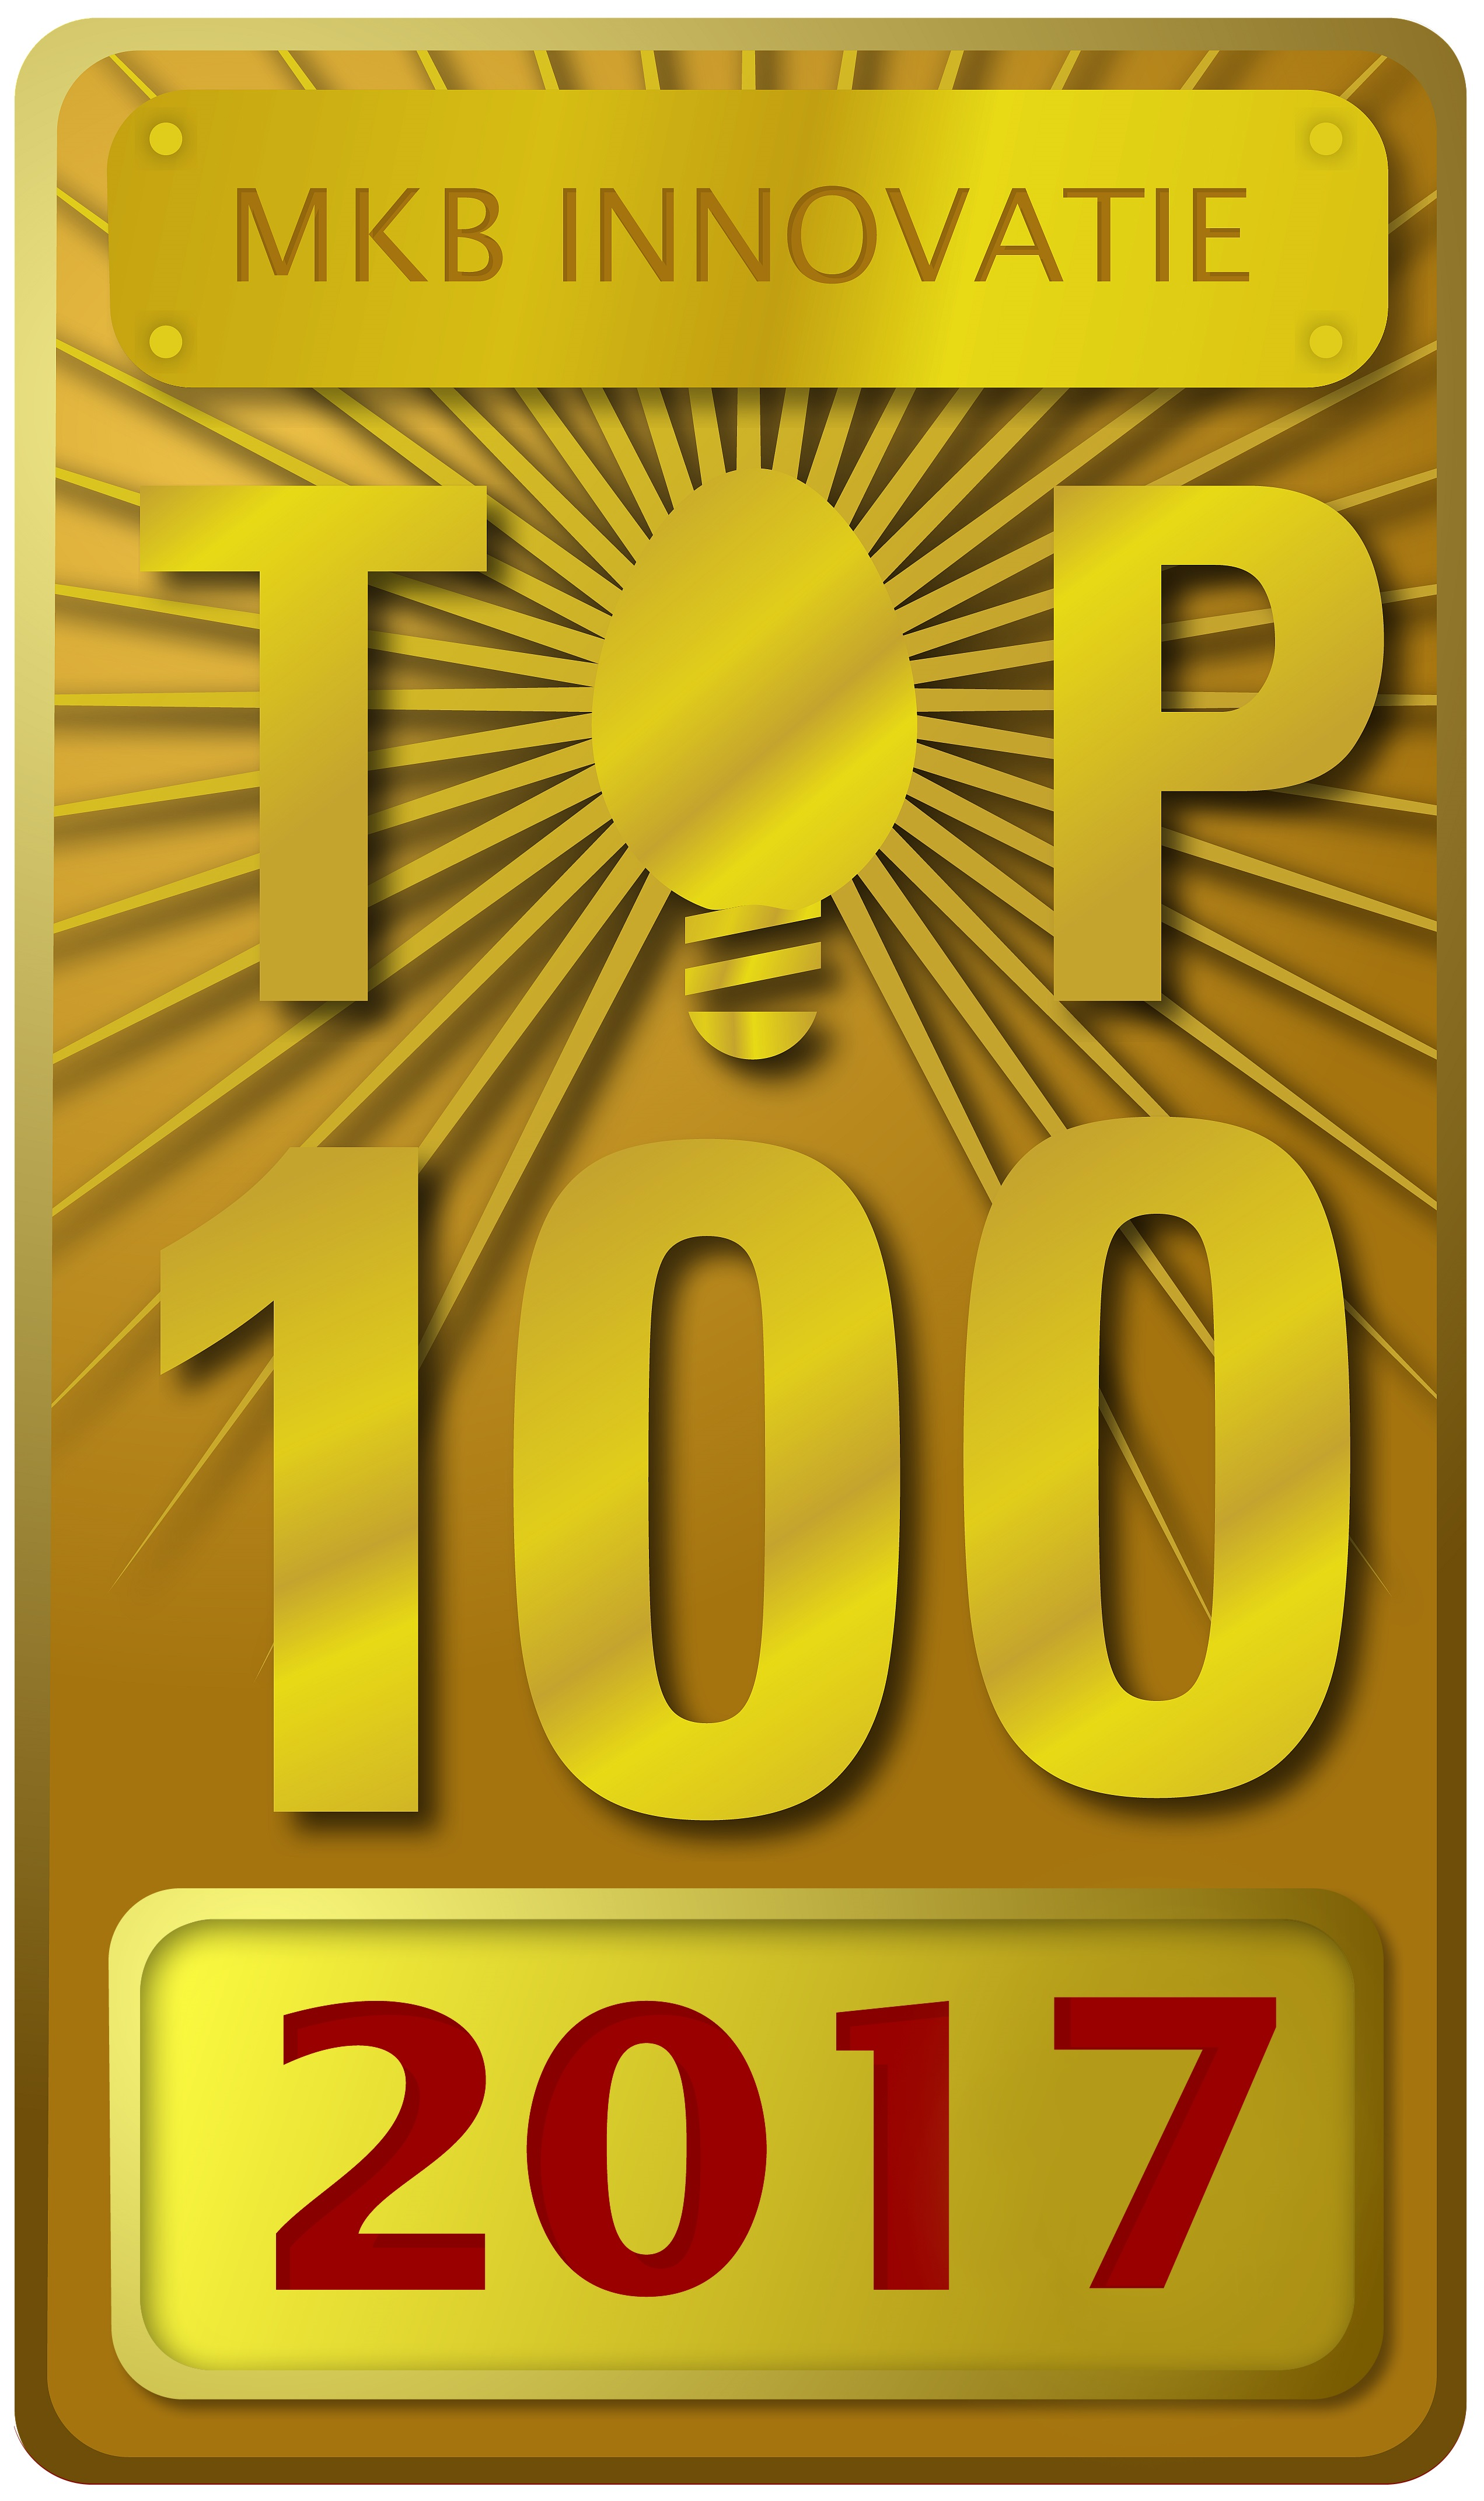 Innovatie Top 100 2017